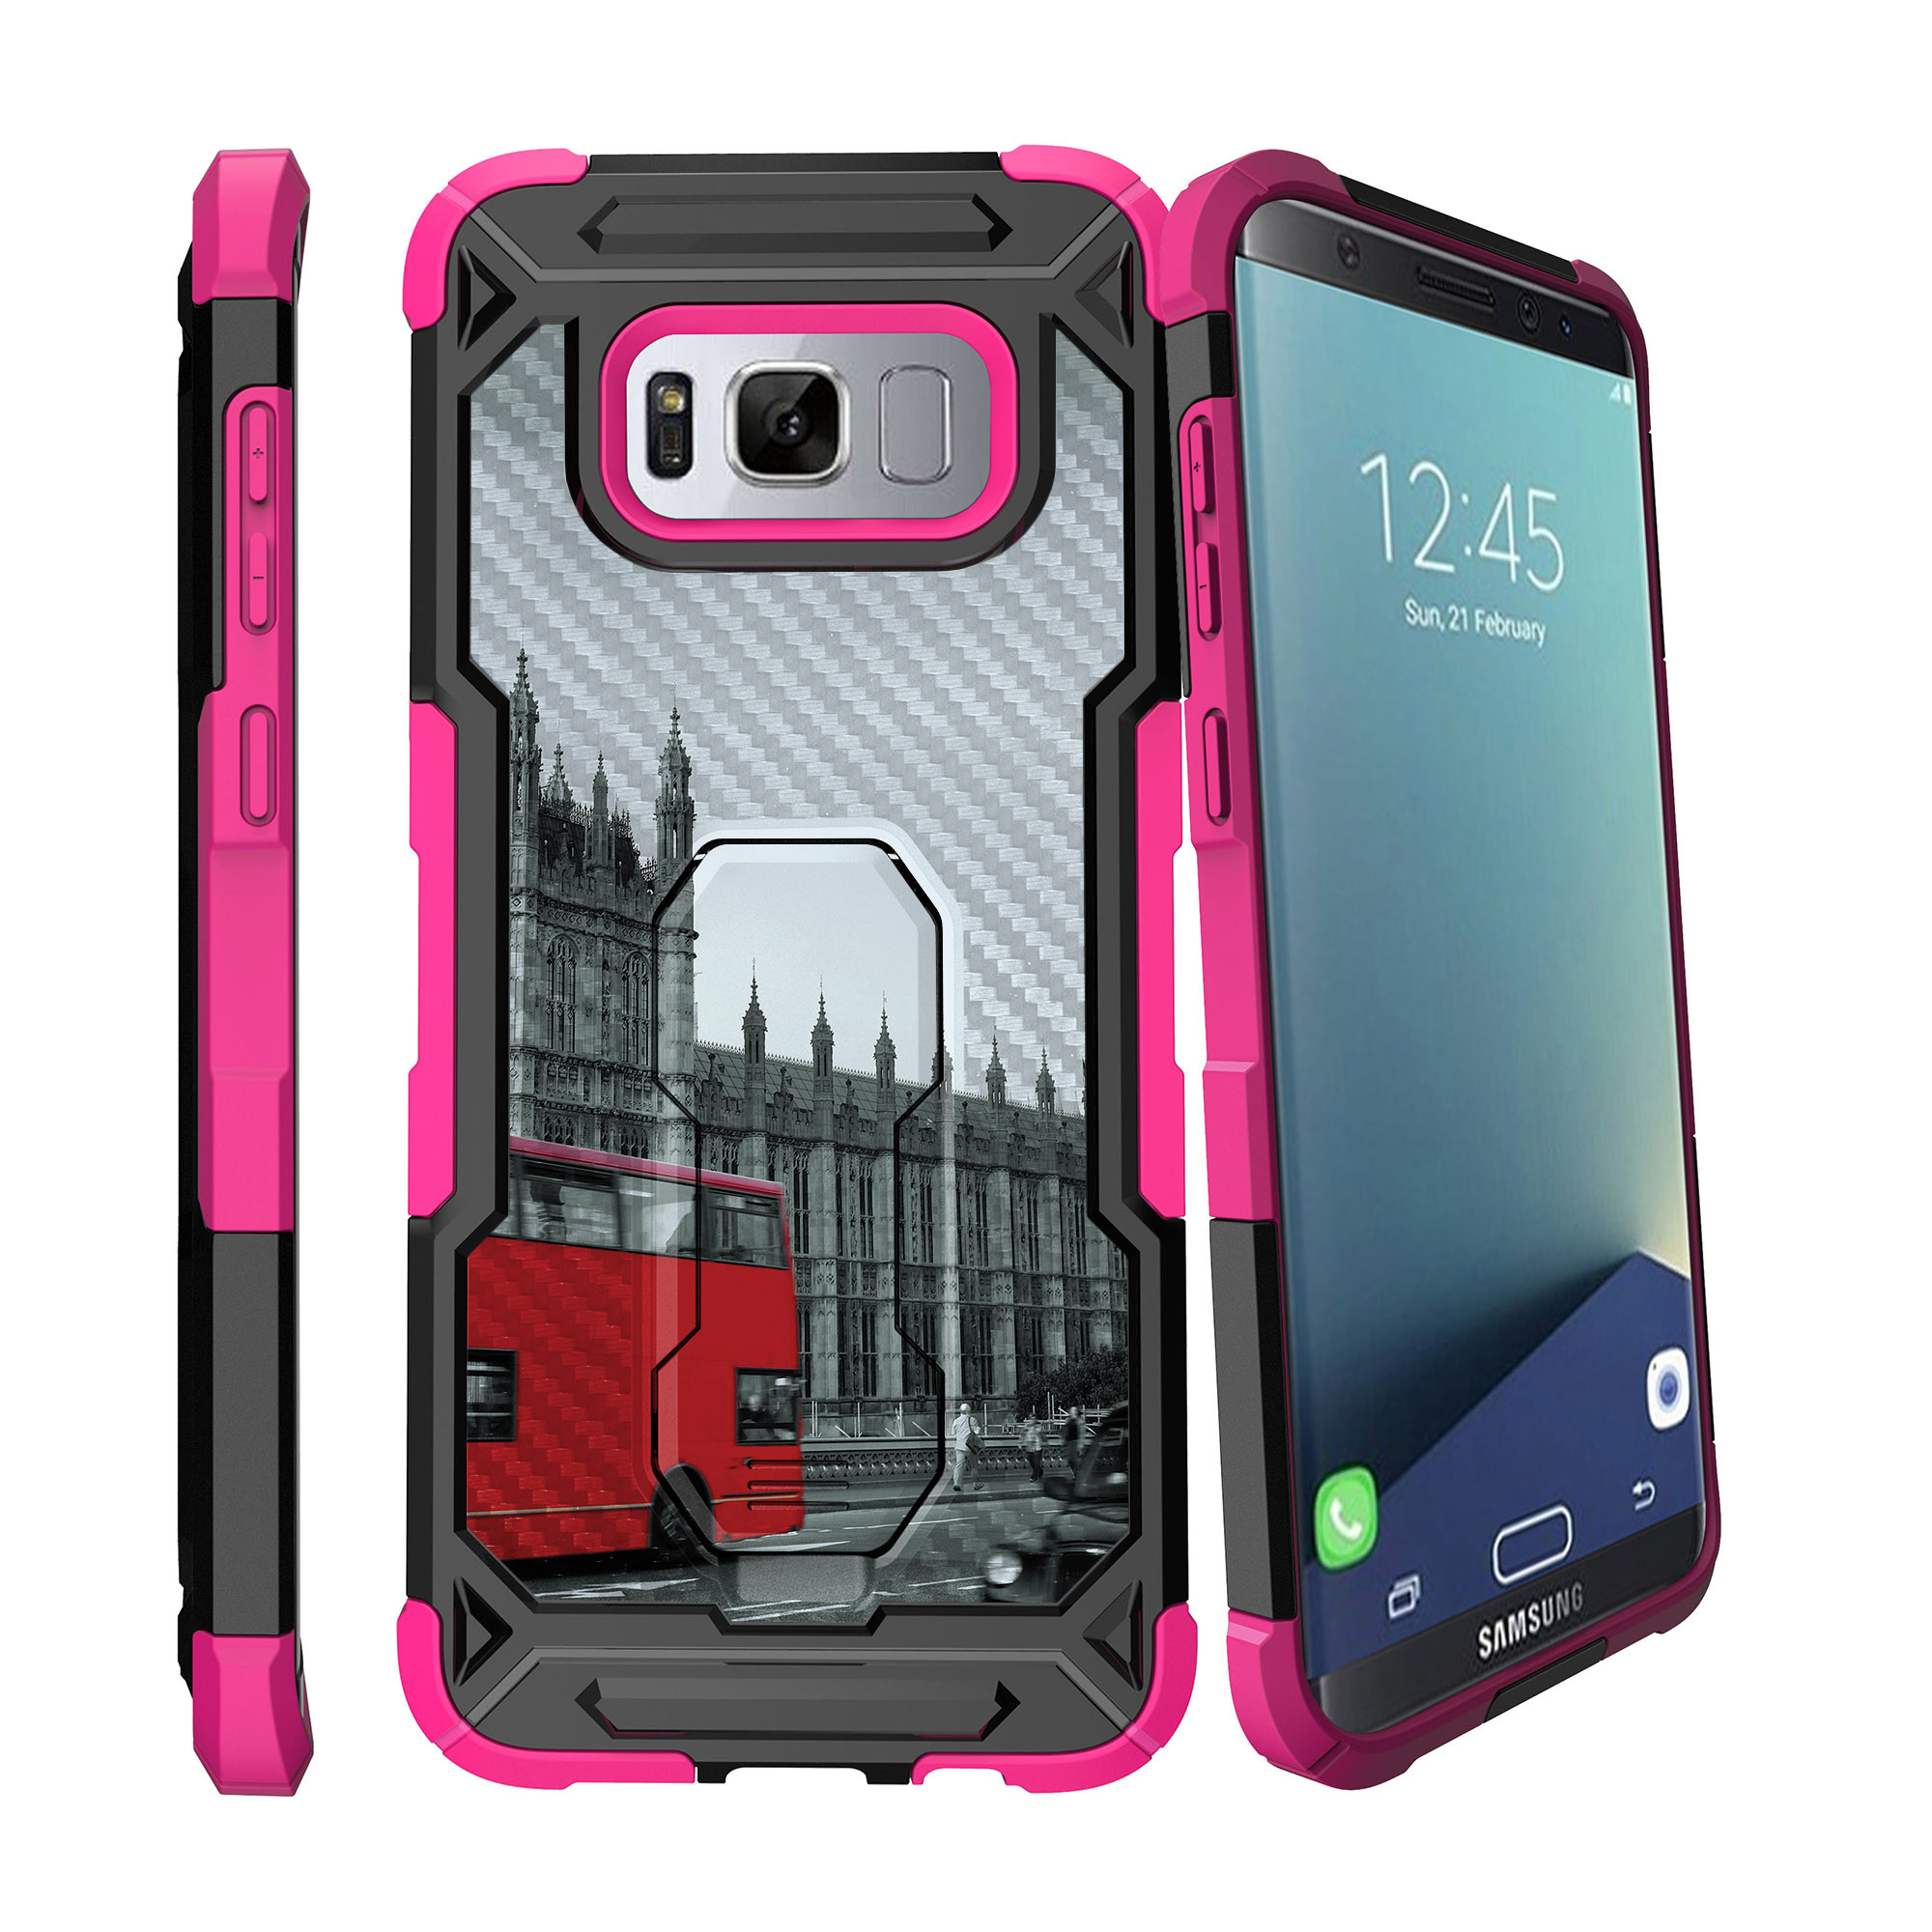 Case for Samsung Galaxy S8 Plus Version [ UFO Defense Case ][Galaxy S8 PLUS SM-G955][Pink Silicone] Carbon Fiber Texture Case with Holster + Stand City Travel Series